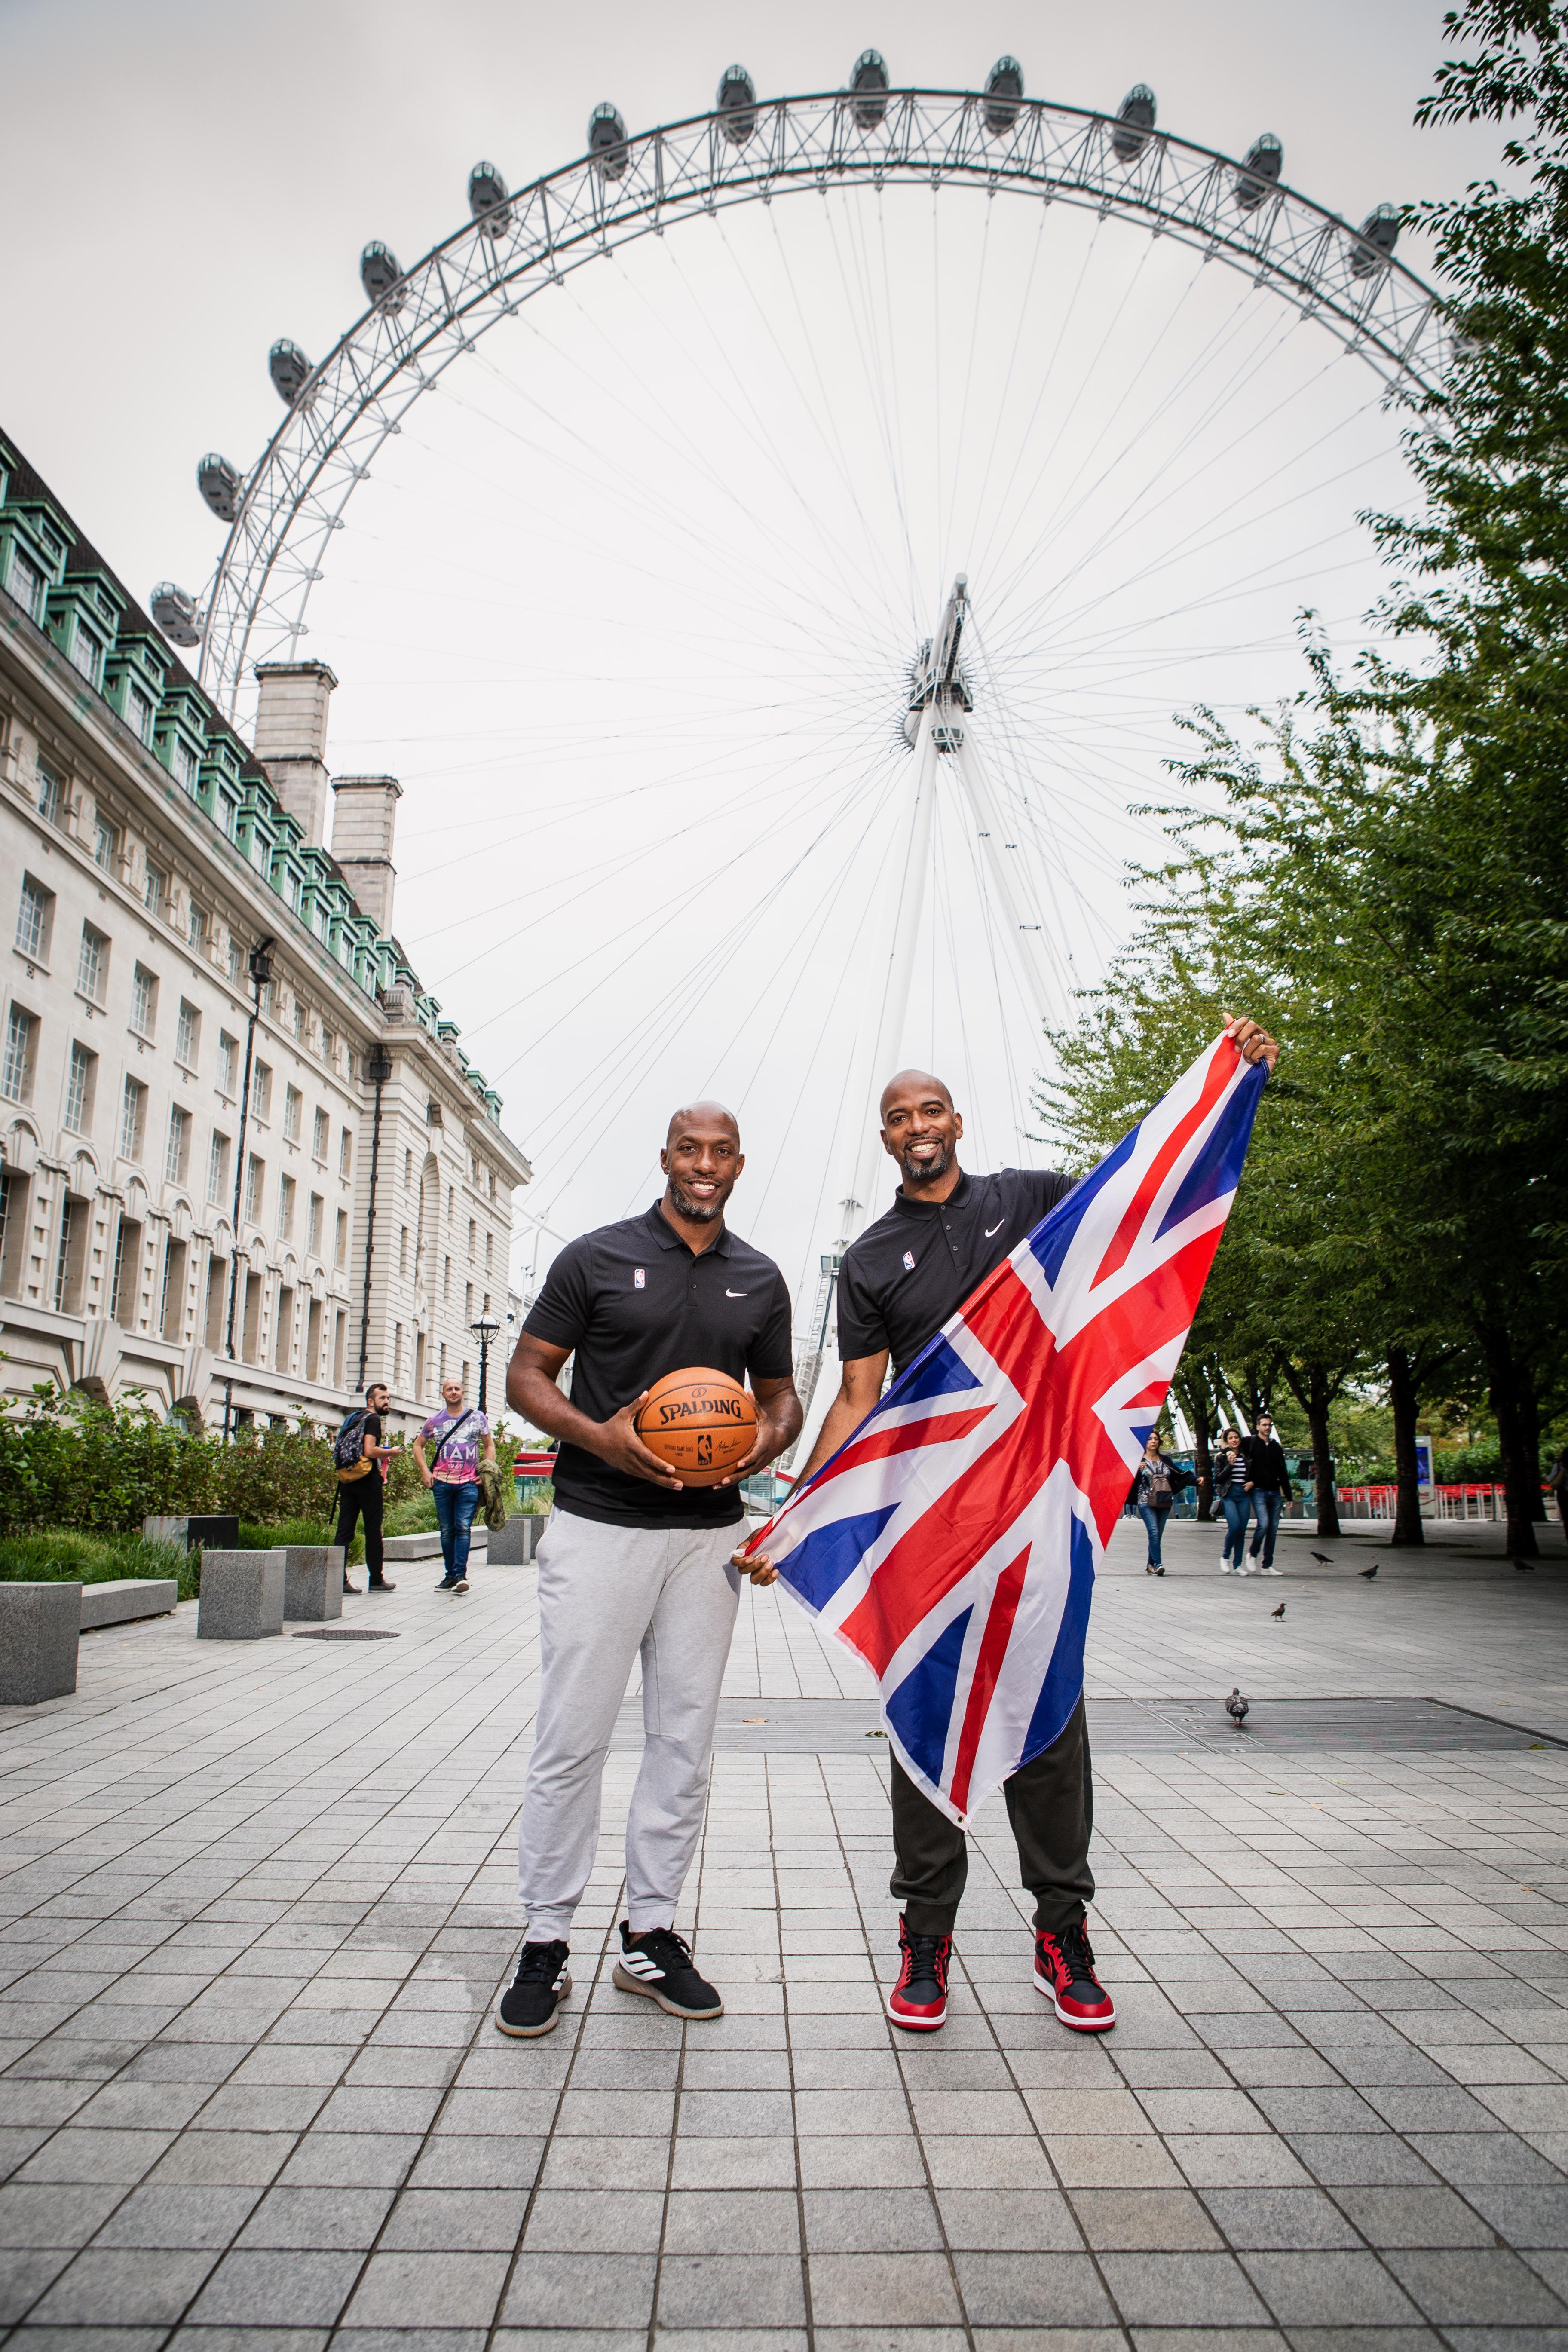 Billups and Hamilton believe the Warriors will face stiff competition from a number of teams across the NBA